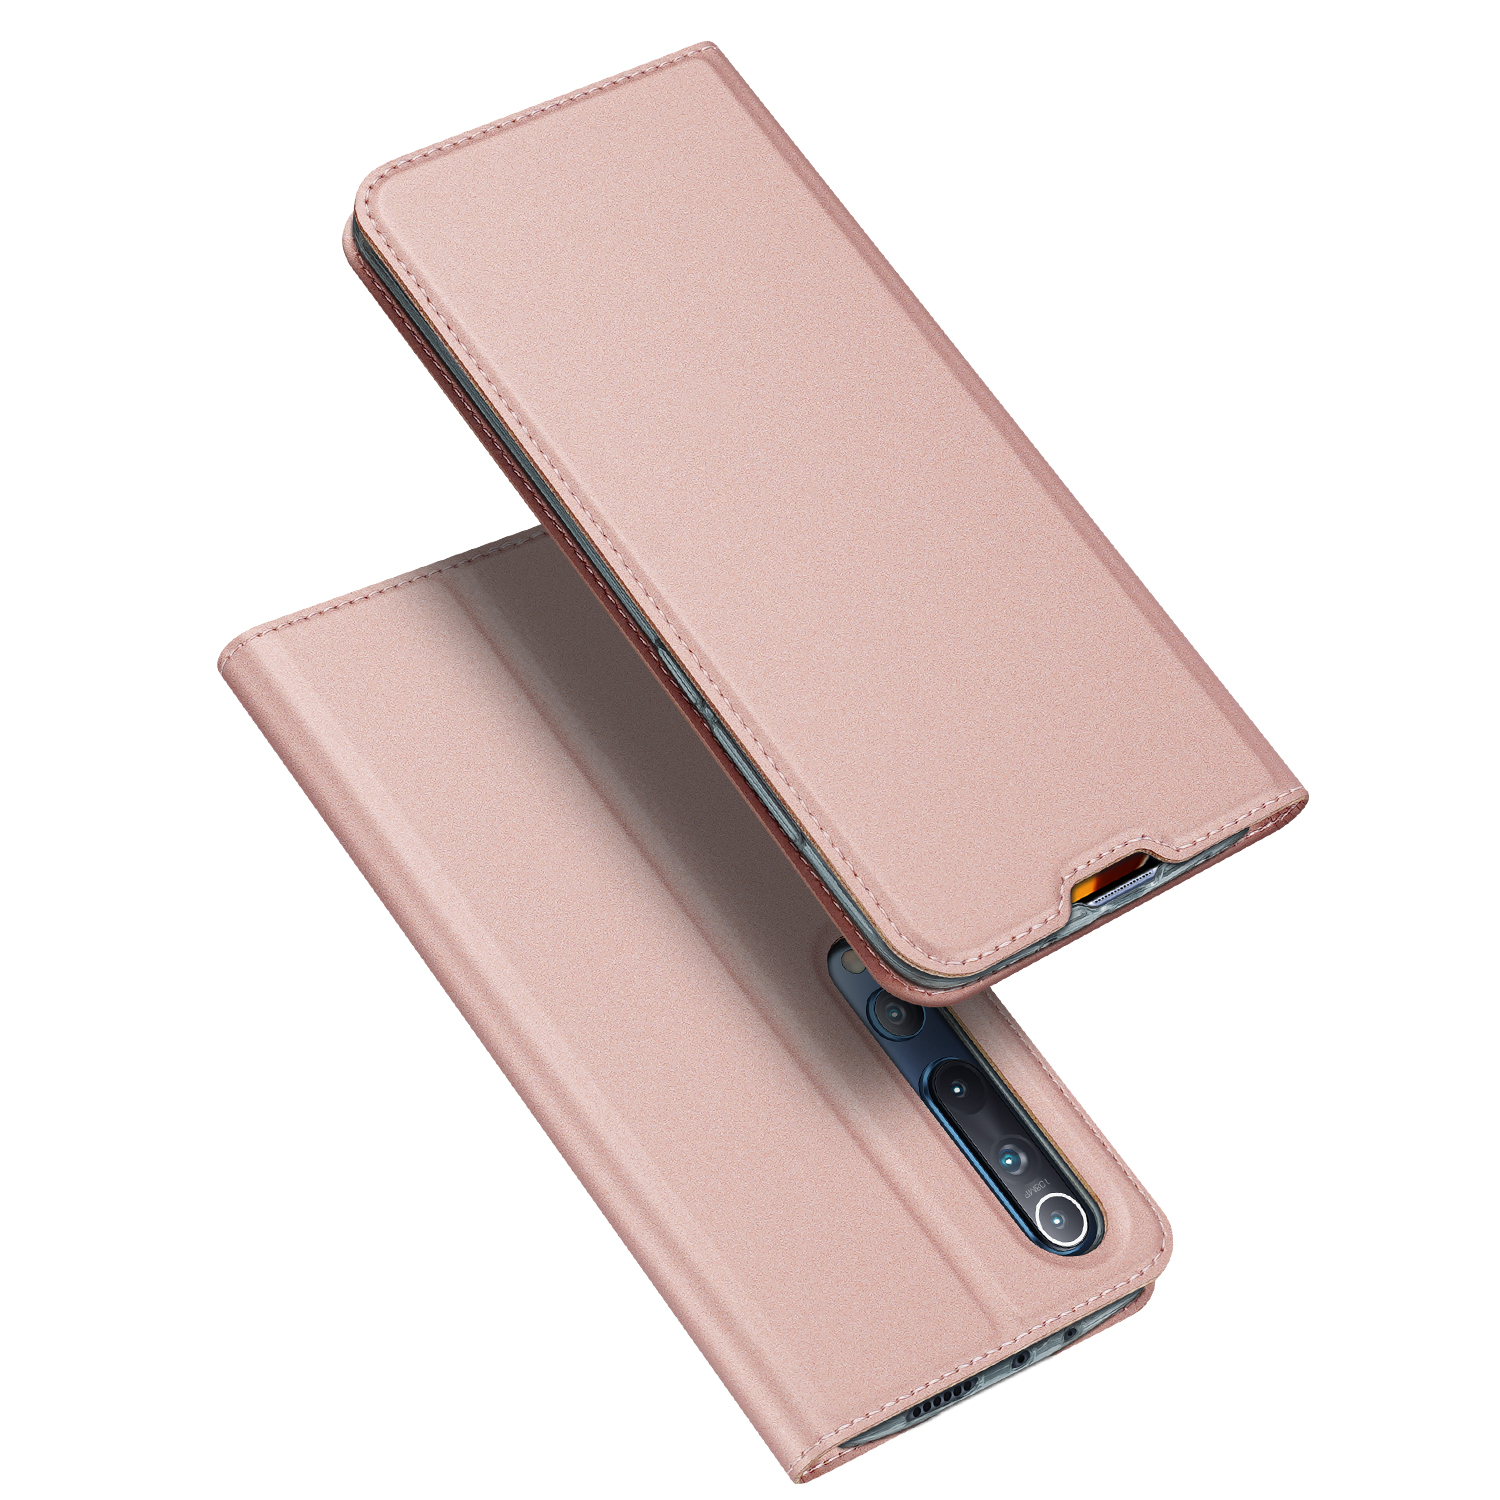 DUX DUCIS For XIAOMI 10/MI 10 Pro Fall Resistant Mobile Phone Cover Magnetic Leather Protective Case with Cards Slot Bracket Rose gold